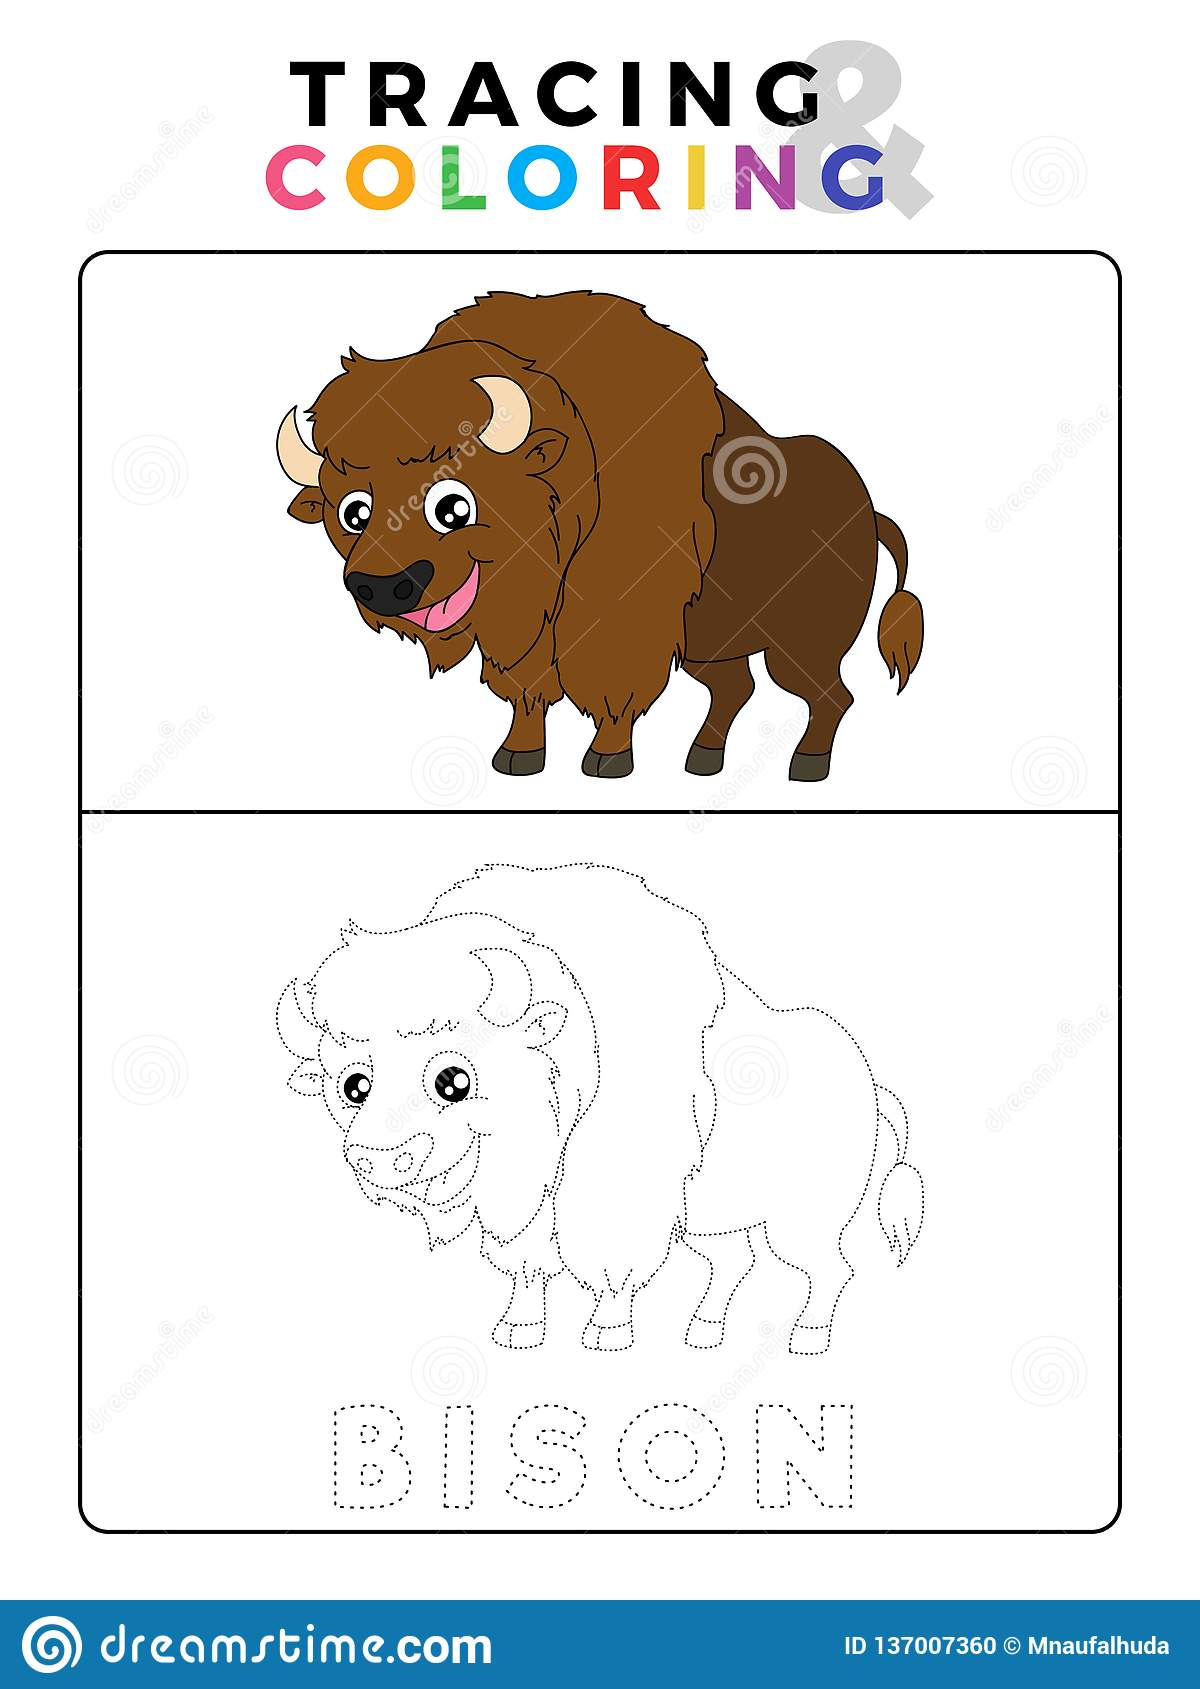 Funny Bison Tracing And Coloring Book With Example